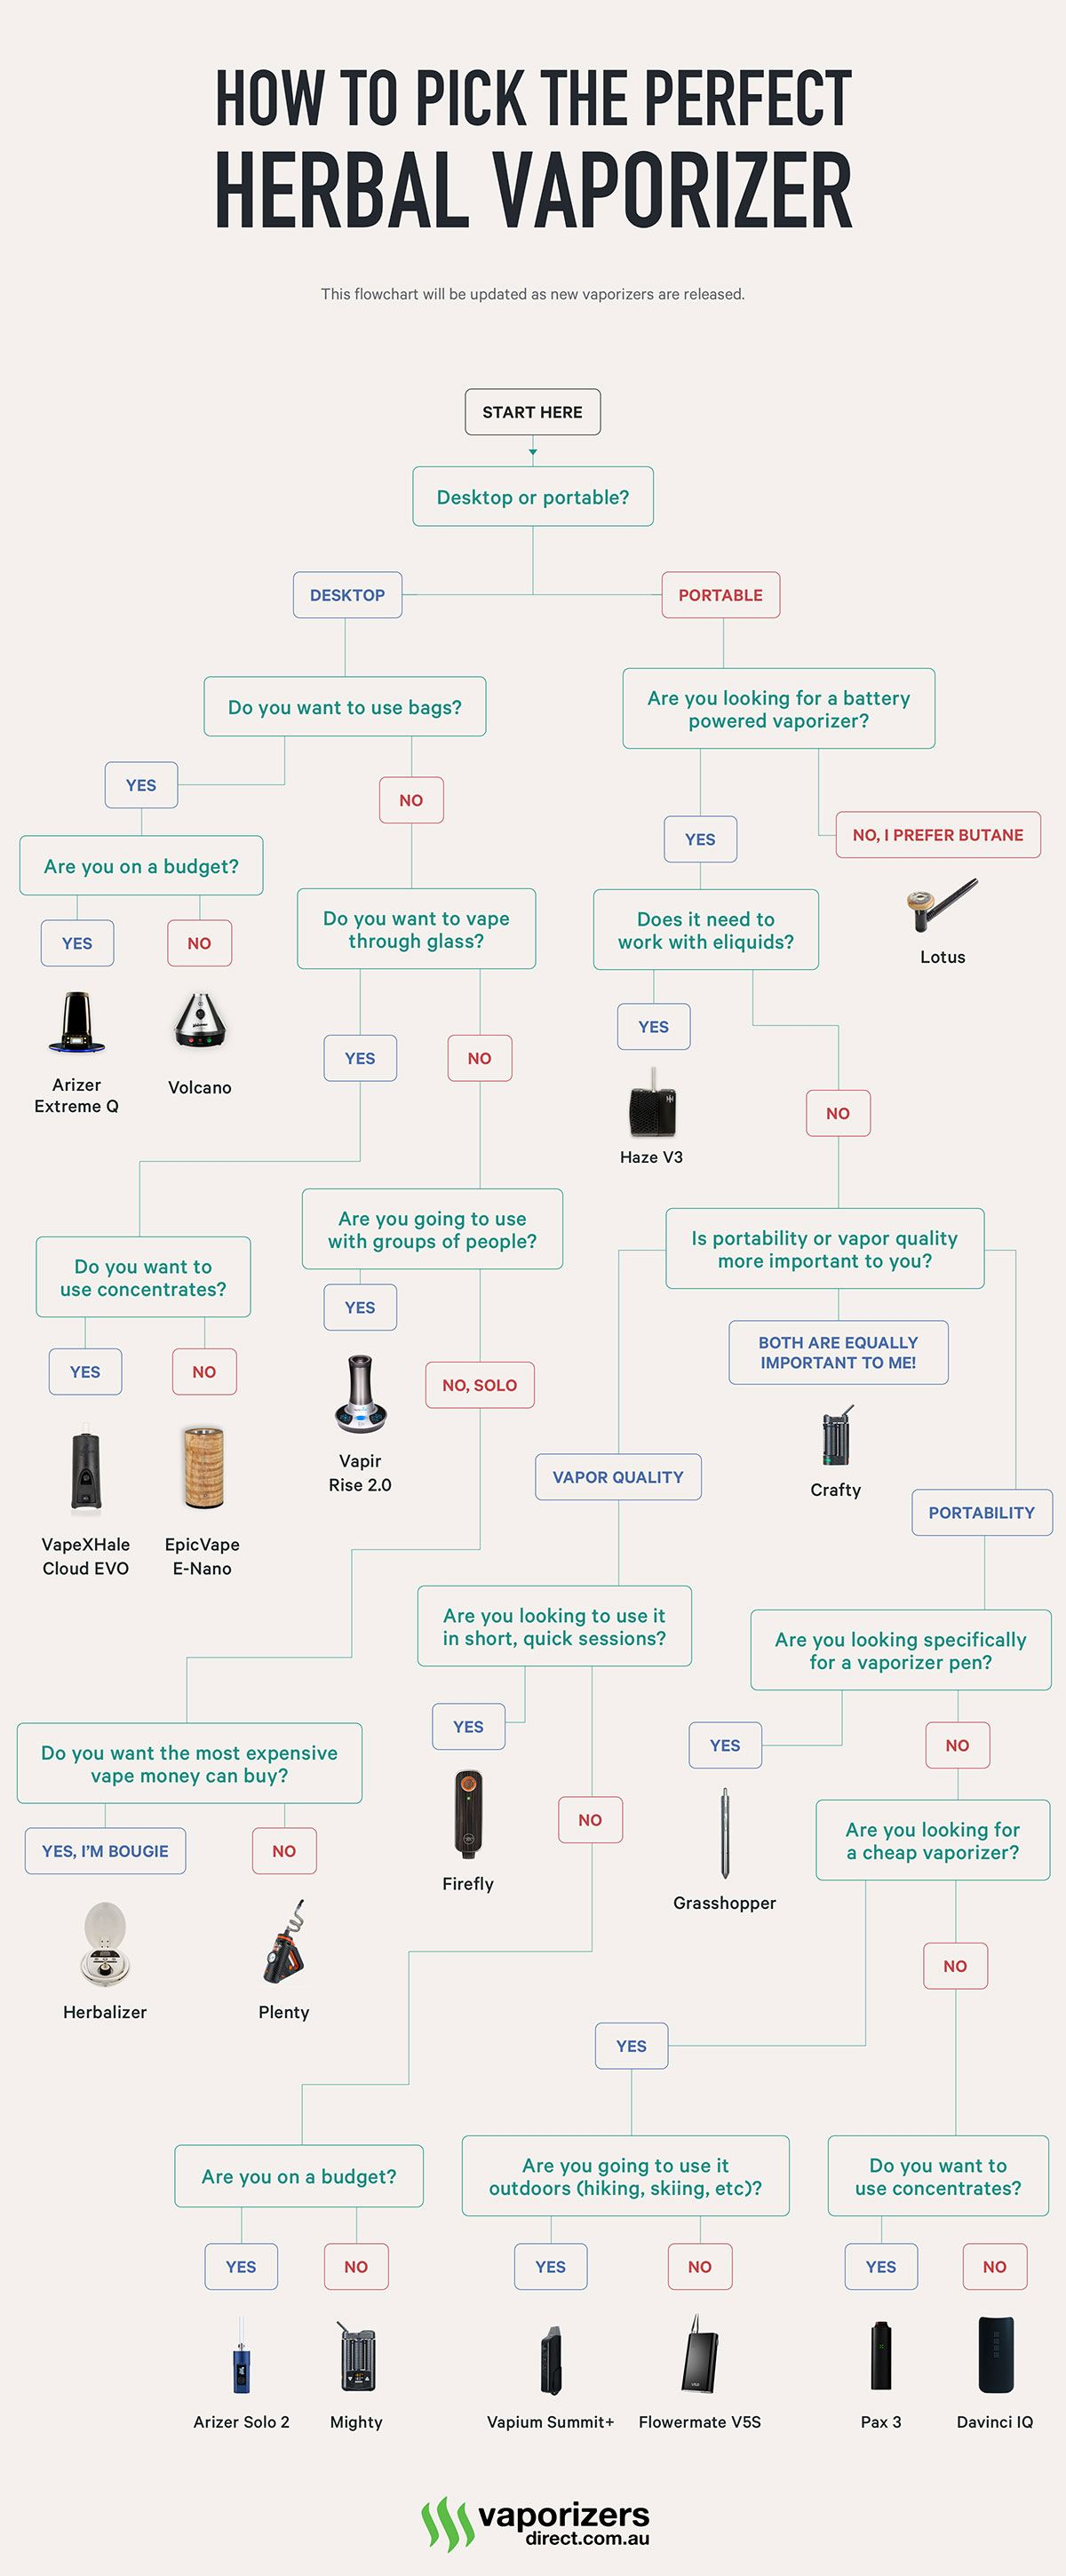 Vaporizer Buying Guide (Flowchart)